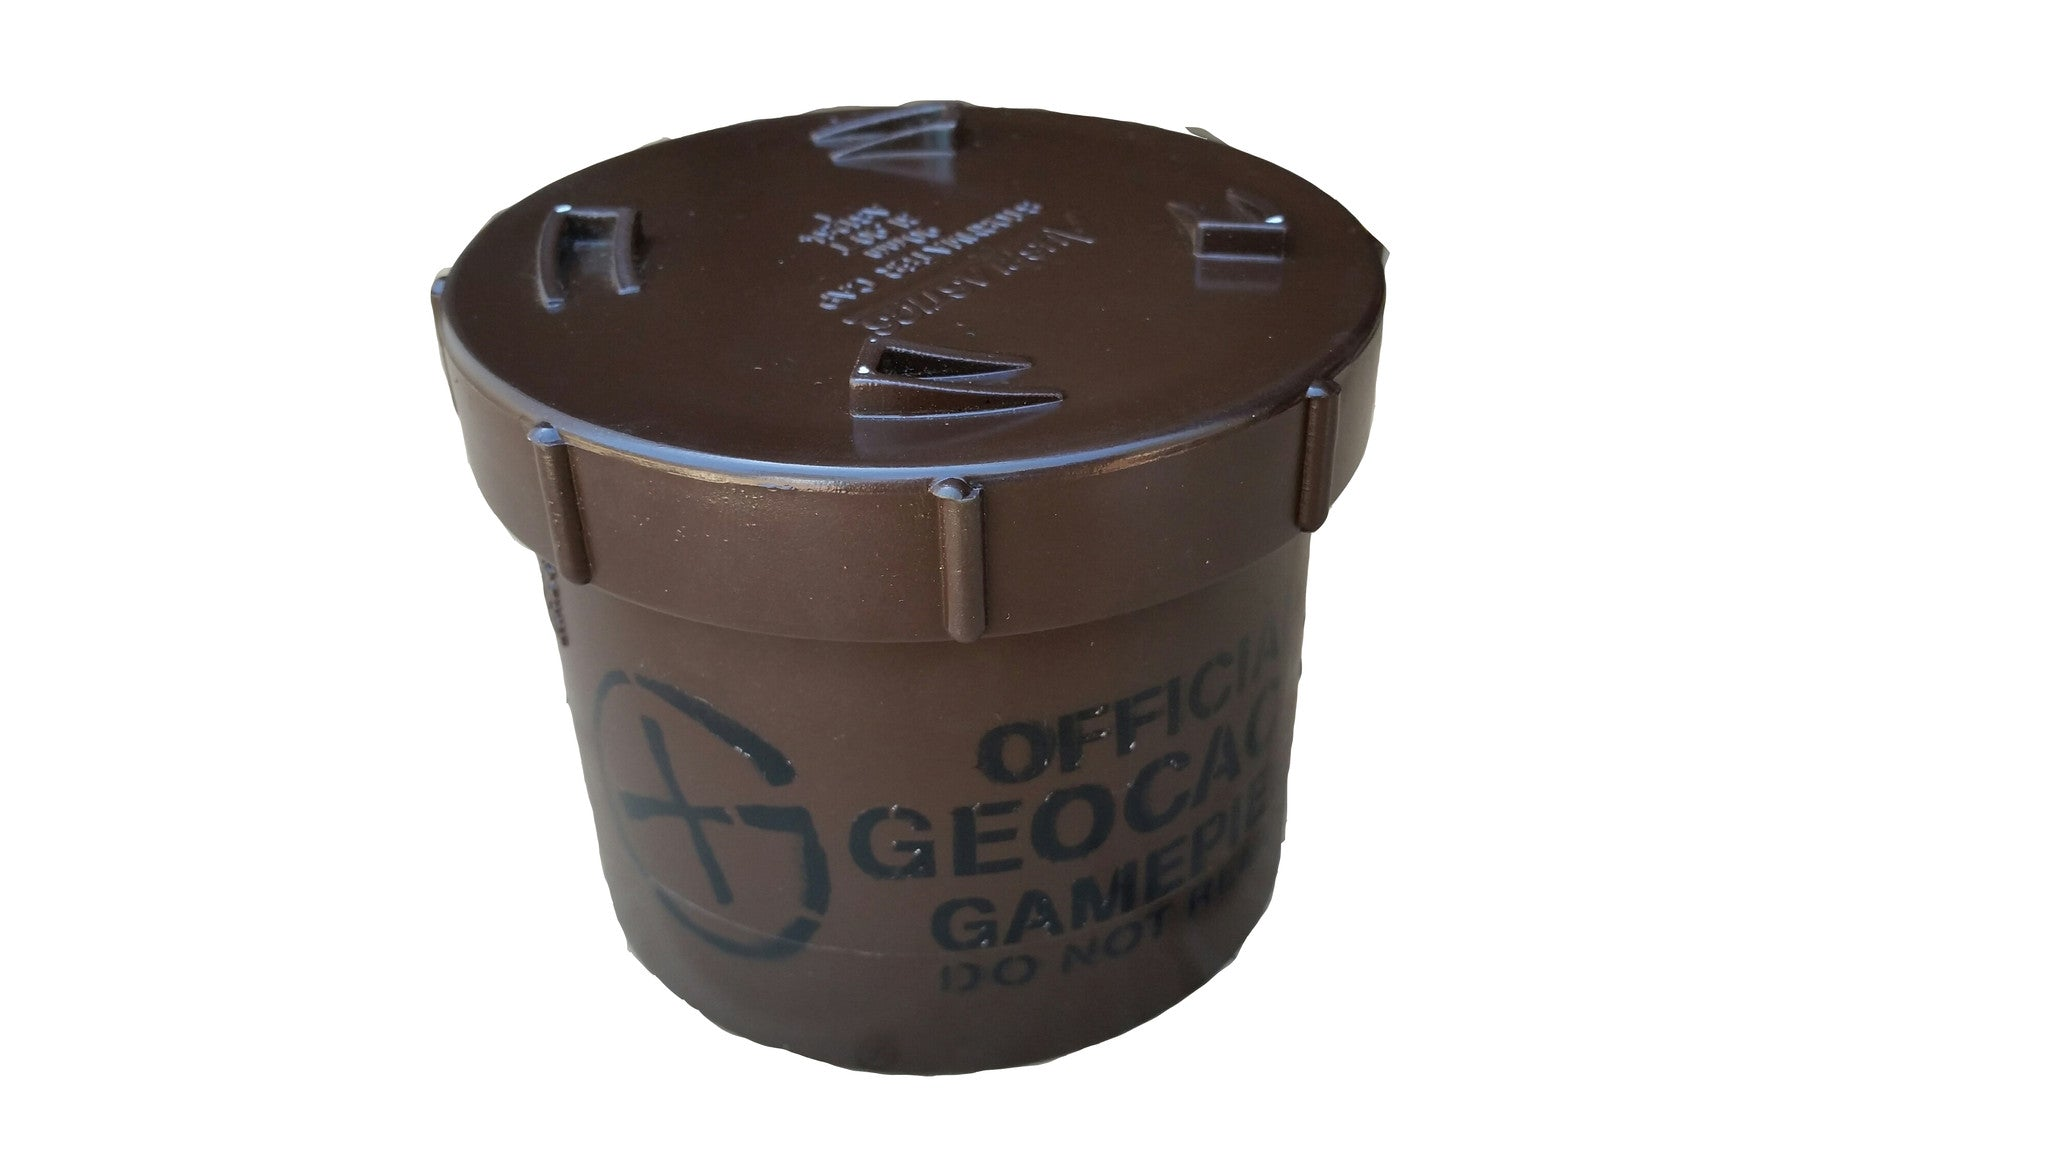 Short 90mm PVC Geocache Container - Brown - Ground Zero Geocaching Supplies